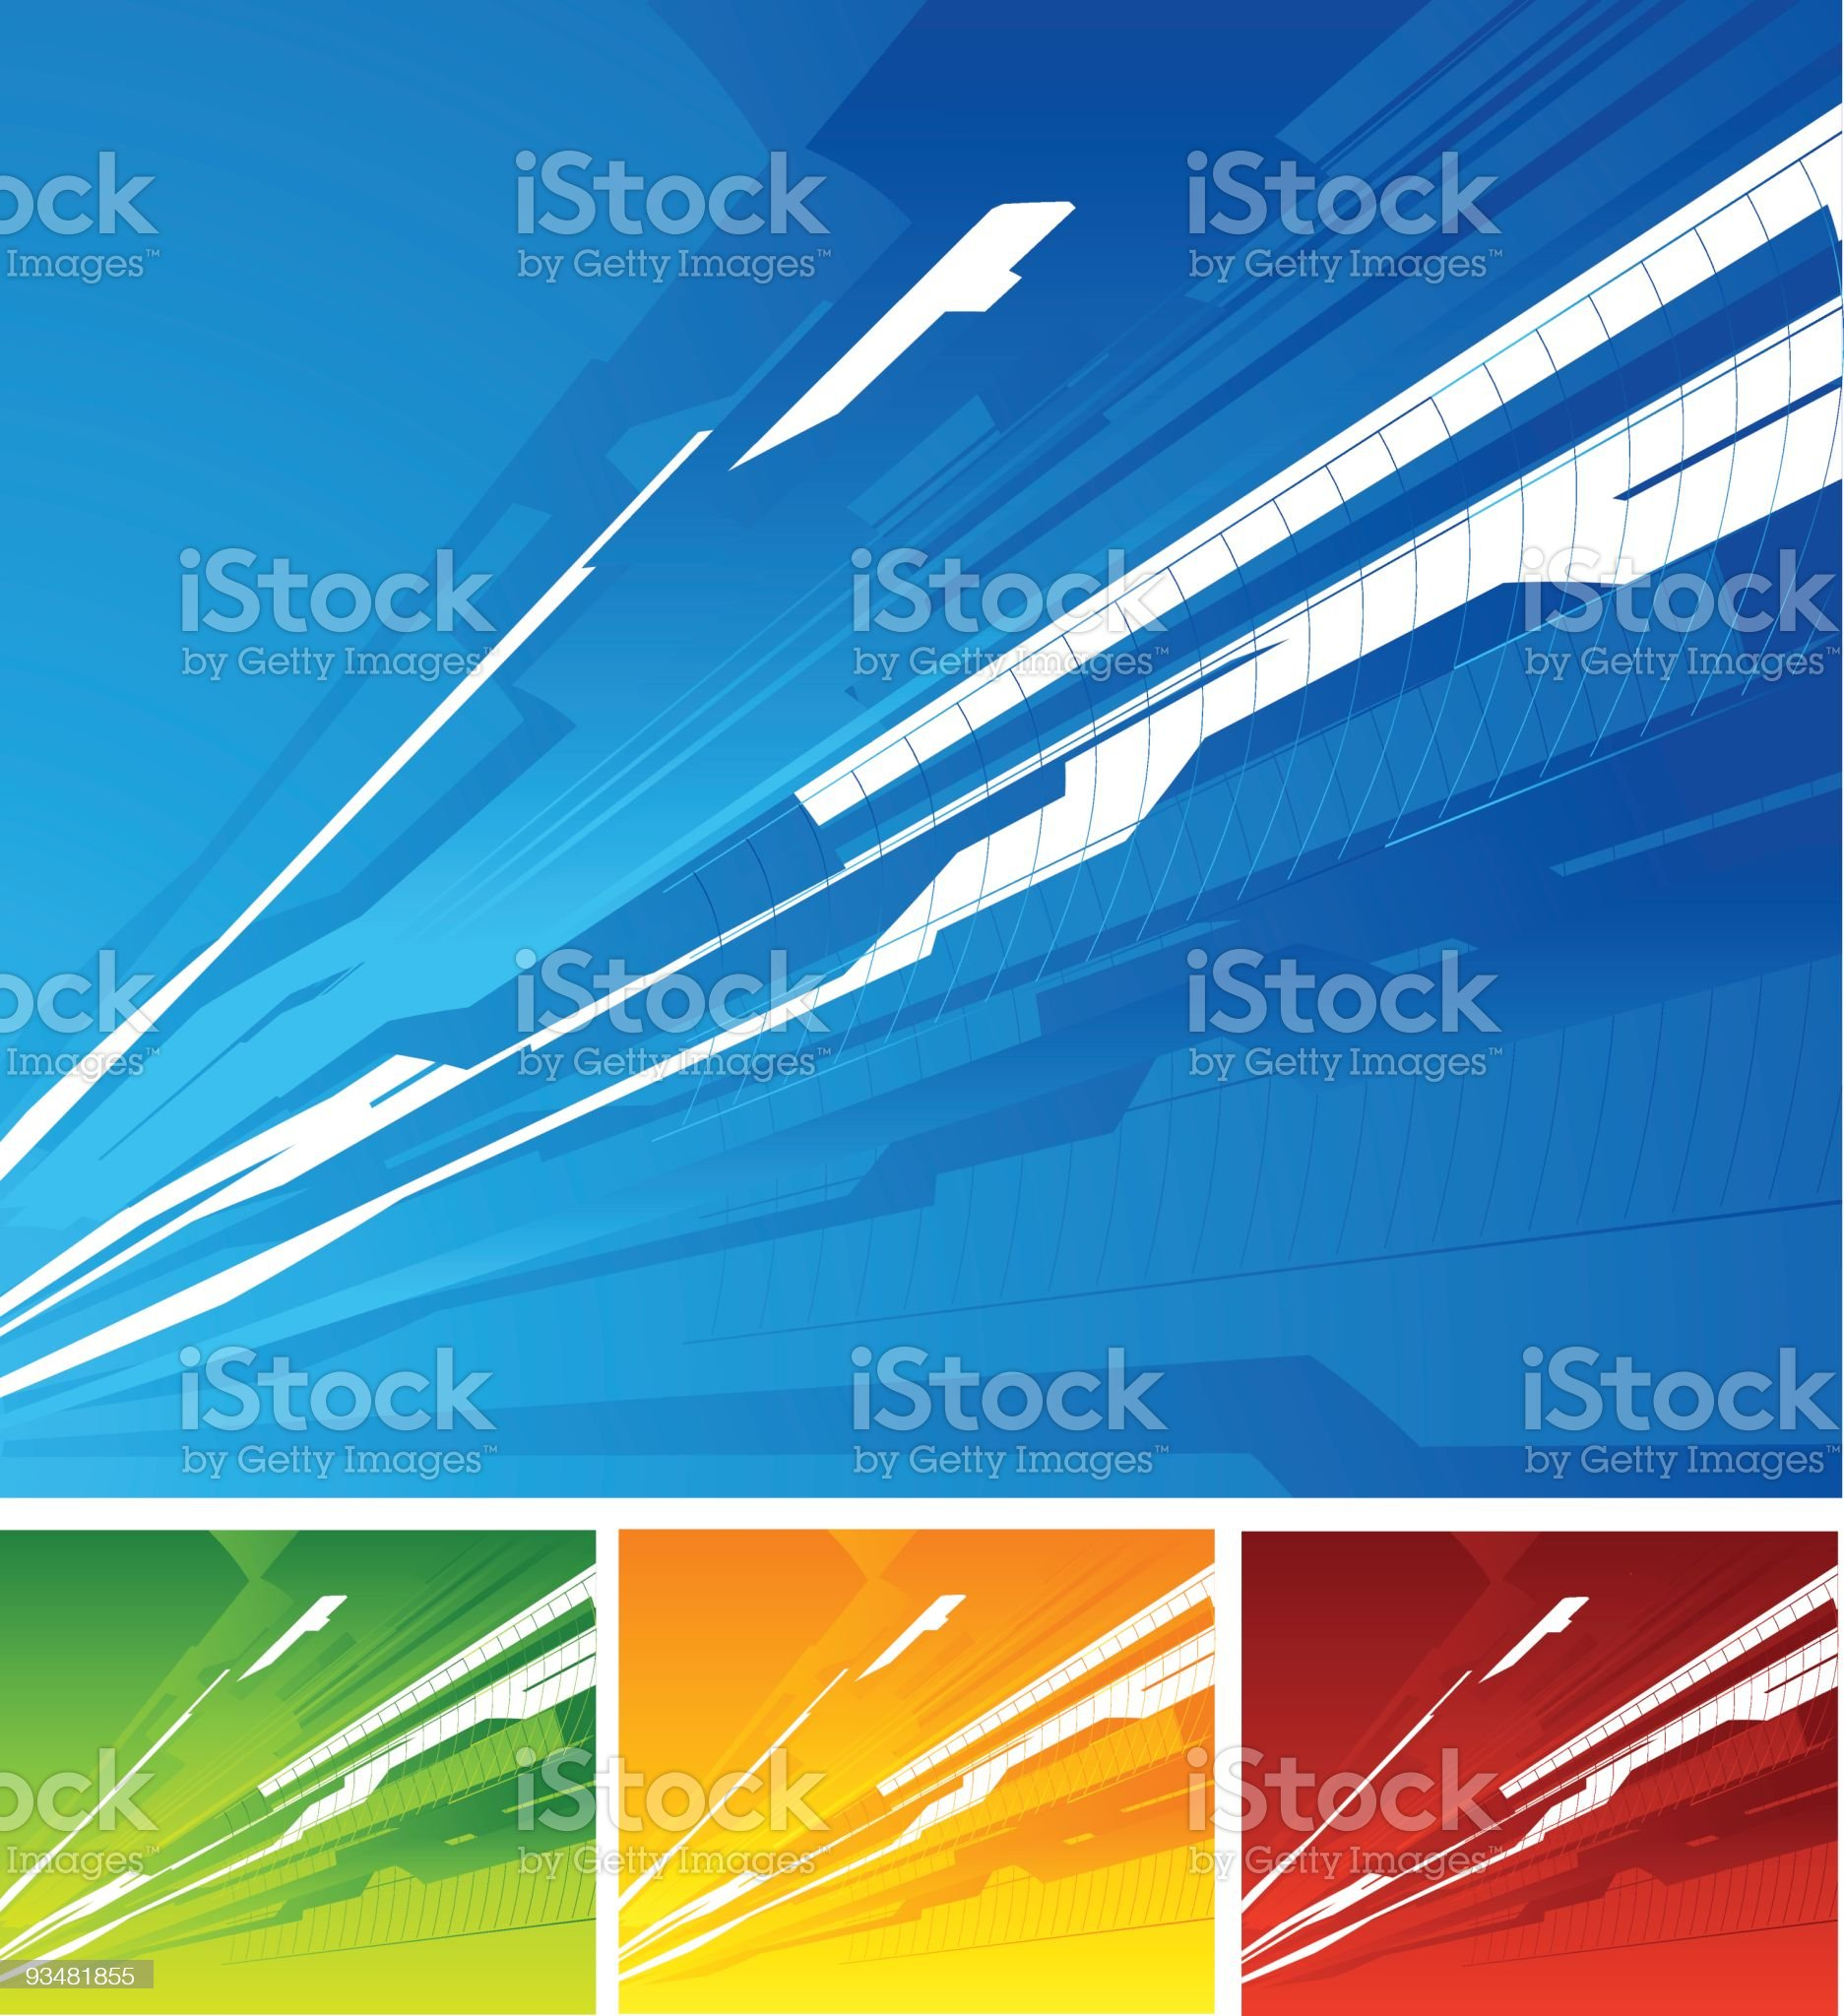 Backgrounds royalty-free stock vector art